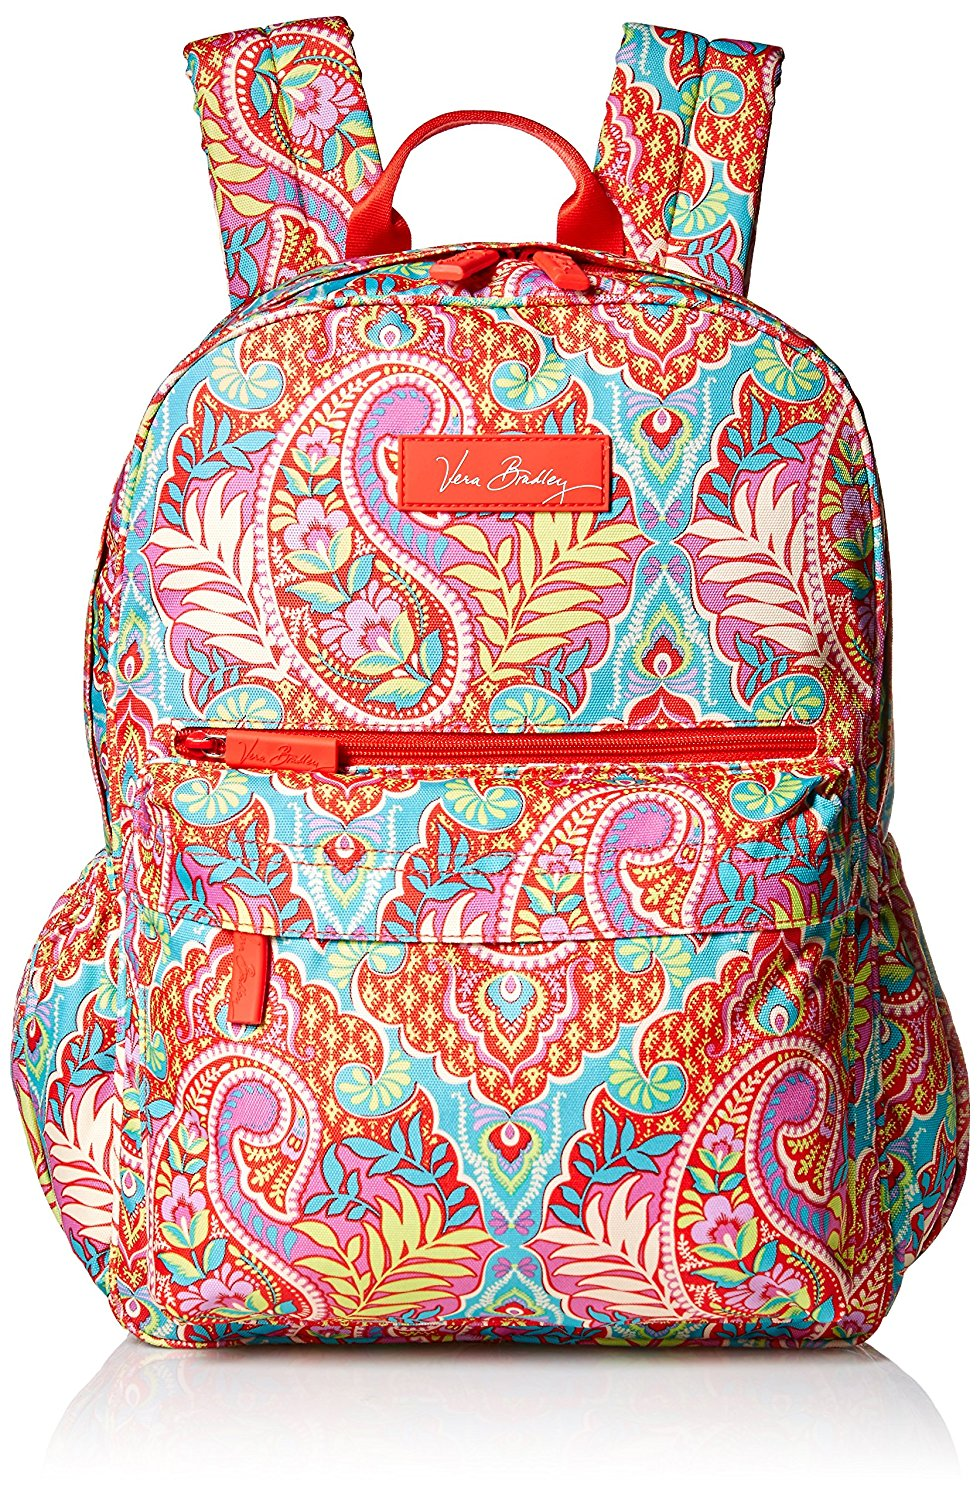 Vera Bradley Lighten Up Just Right Backpack Paisley In Paradise One Size